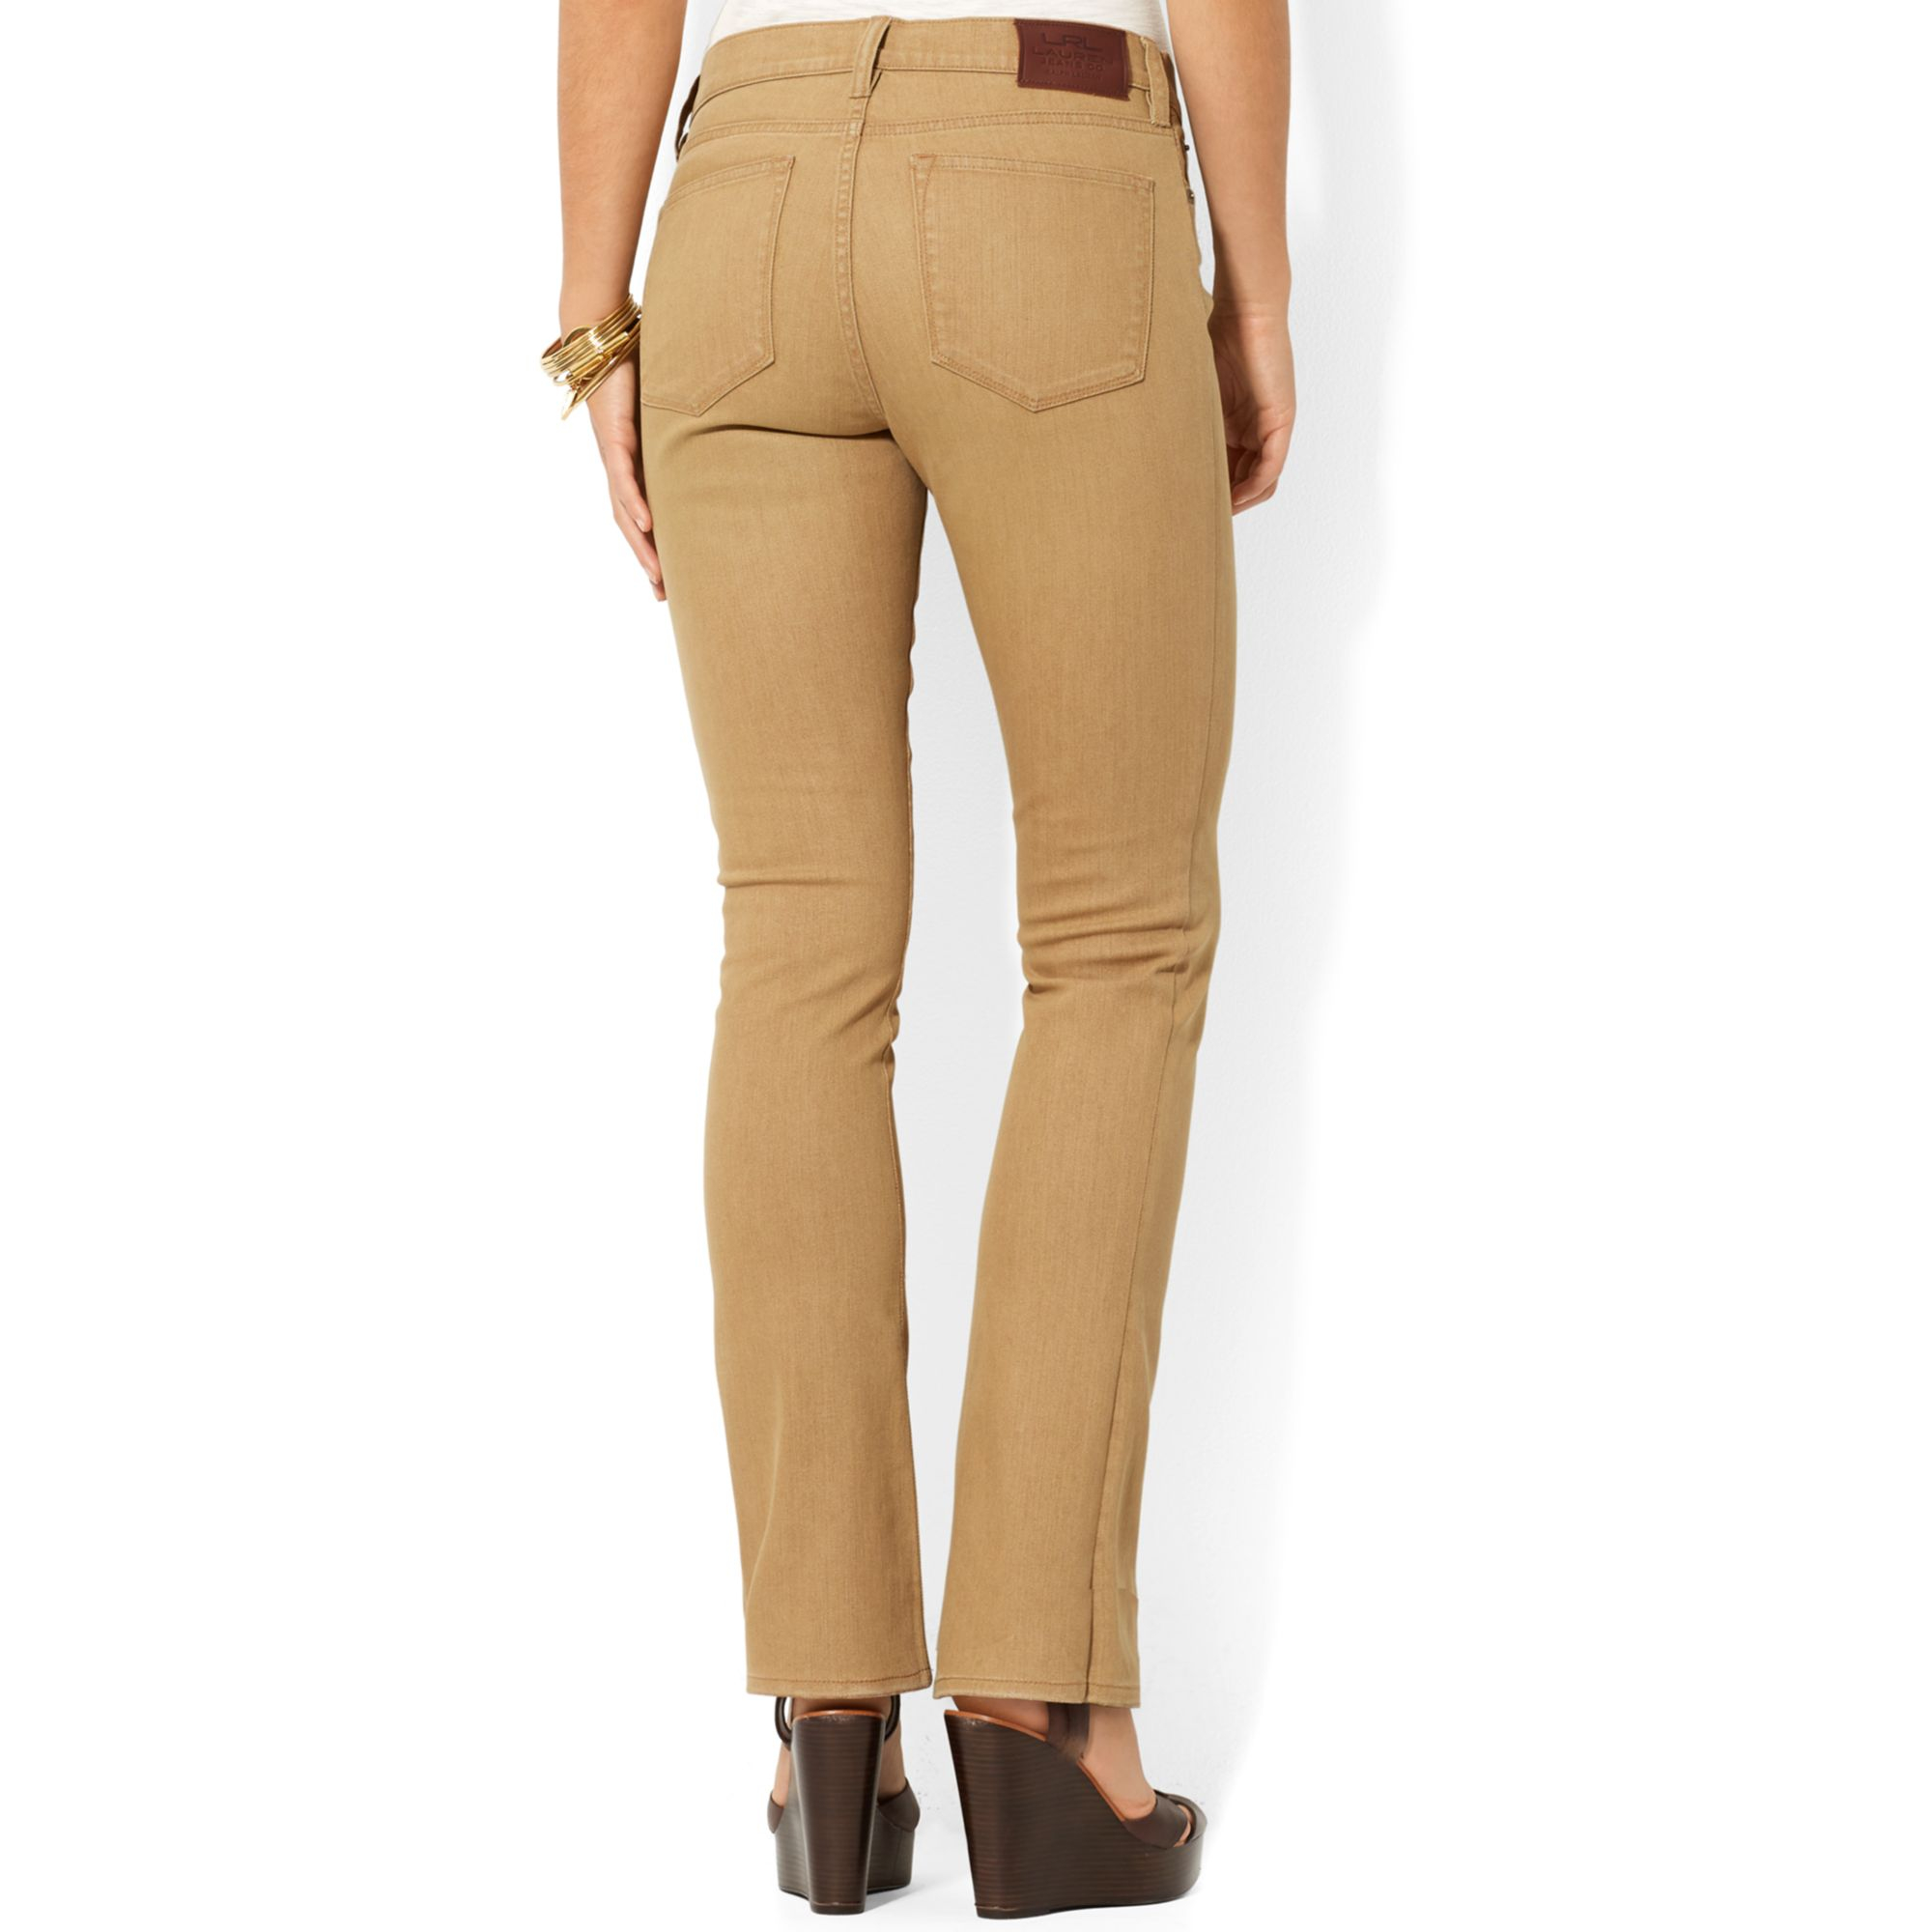 Tan Jeans For Women Ye Jean